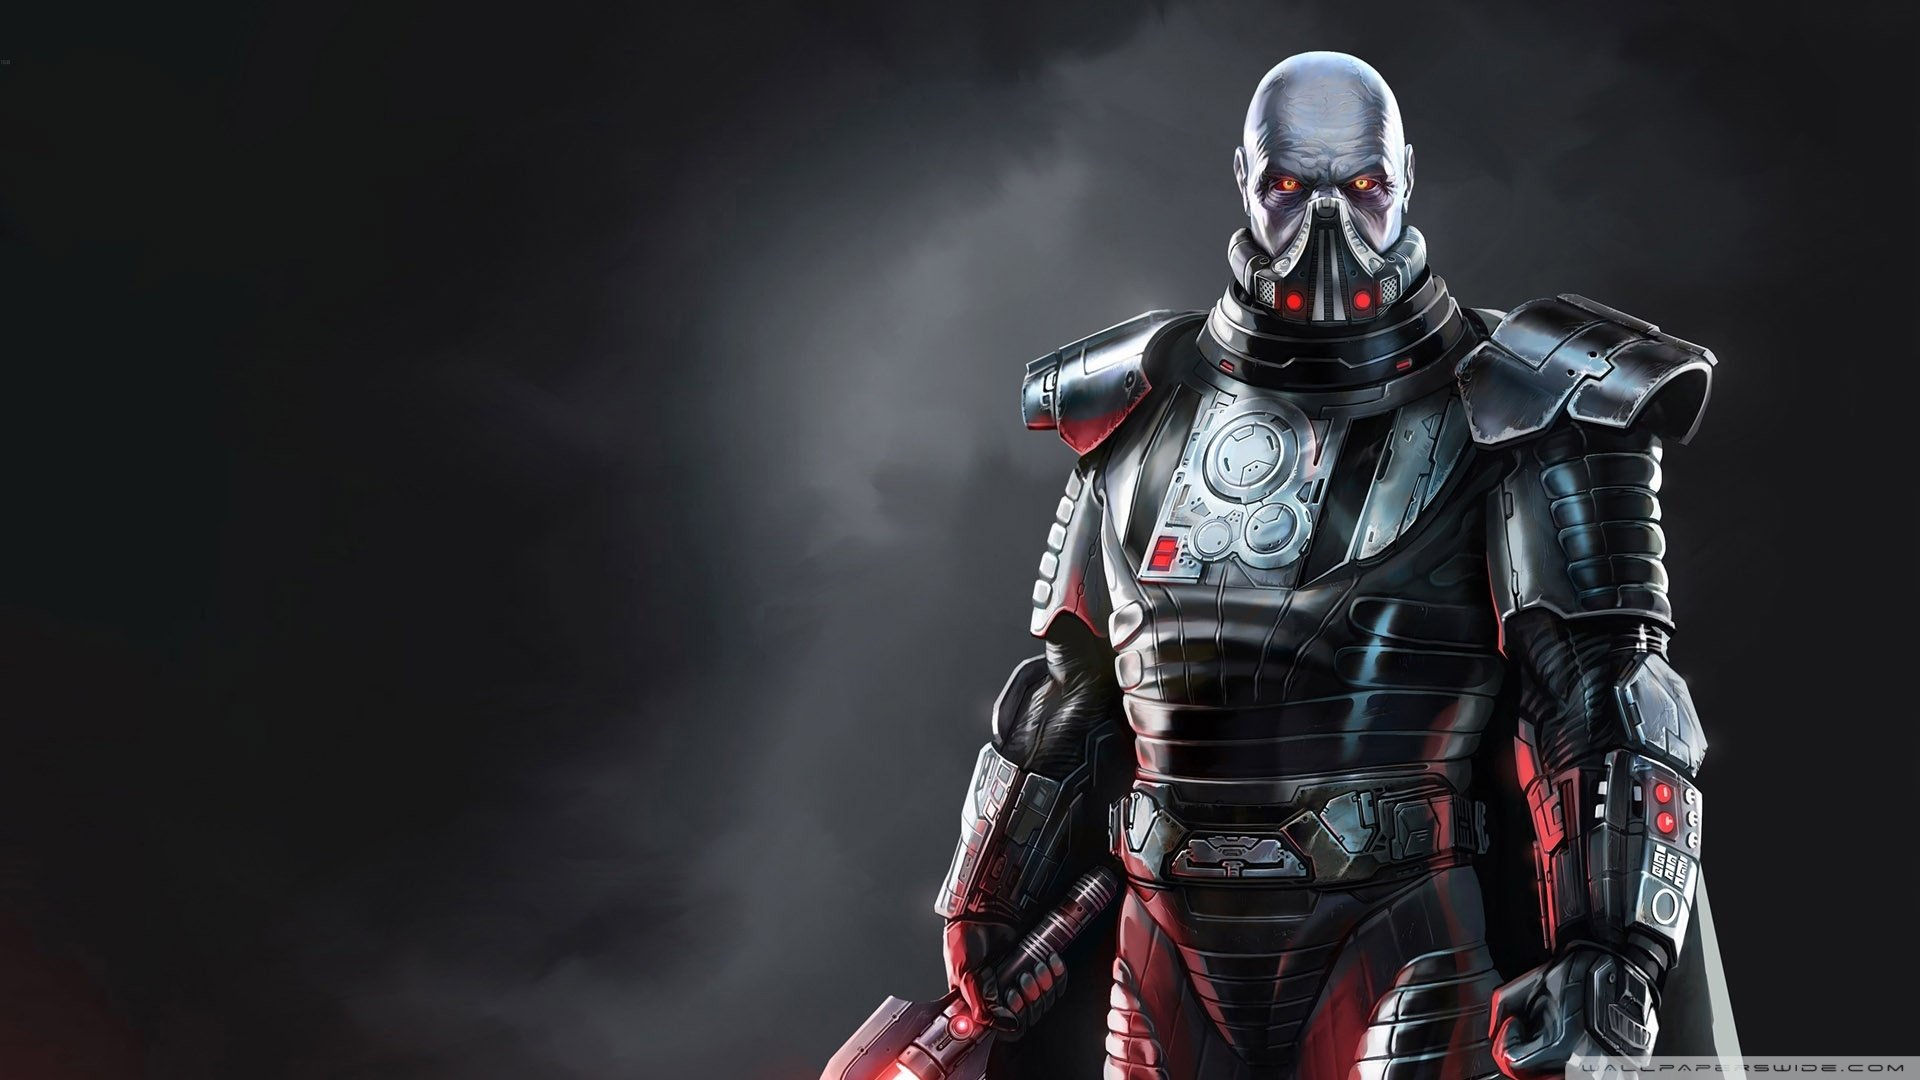 Sci Fi - Star Wars  Darth Malgus Sith (Star Wars) Wallpaper